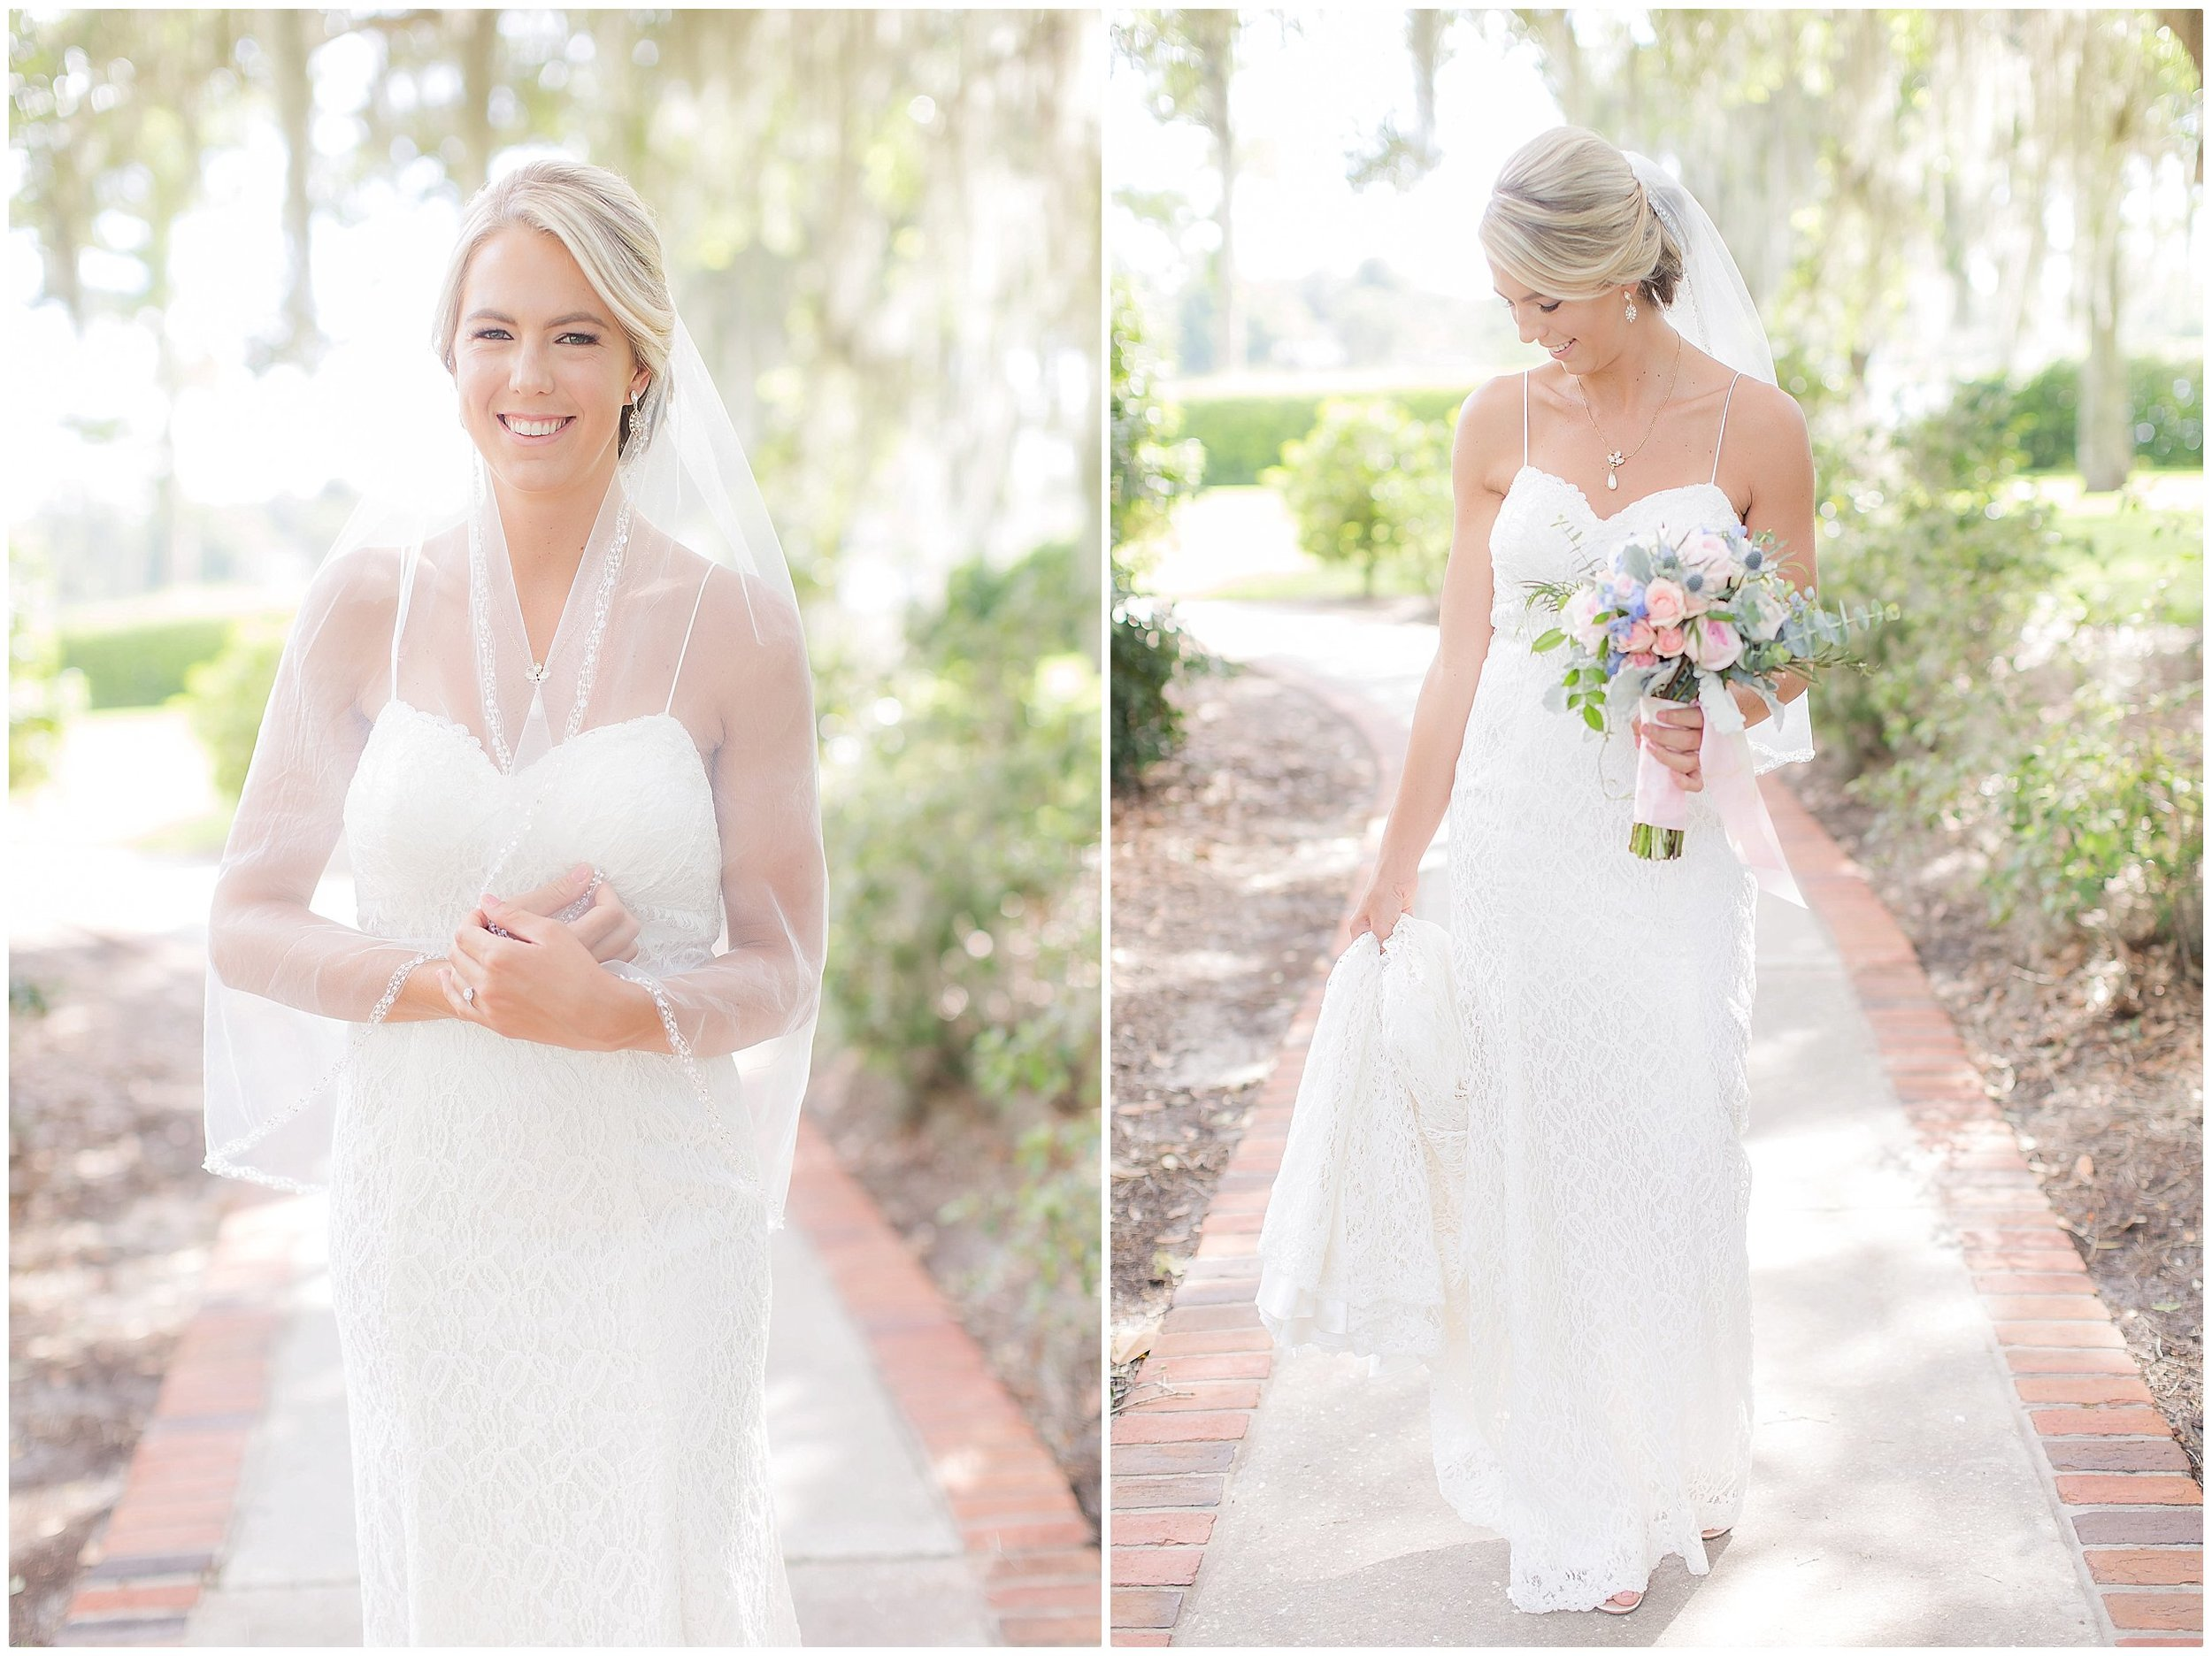 Lacy summer wedding gown bridal portraits